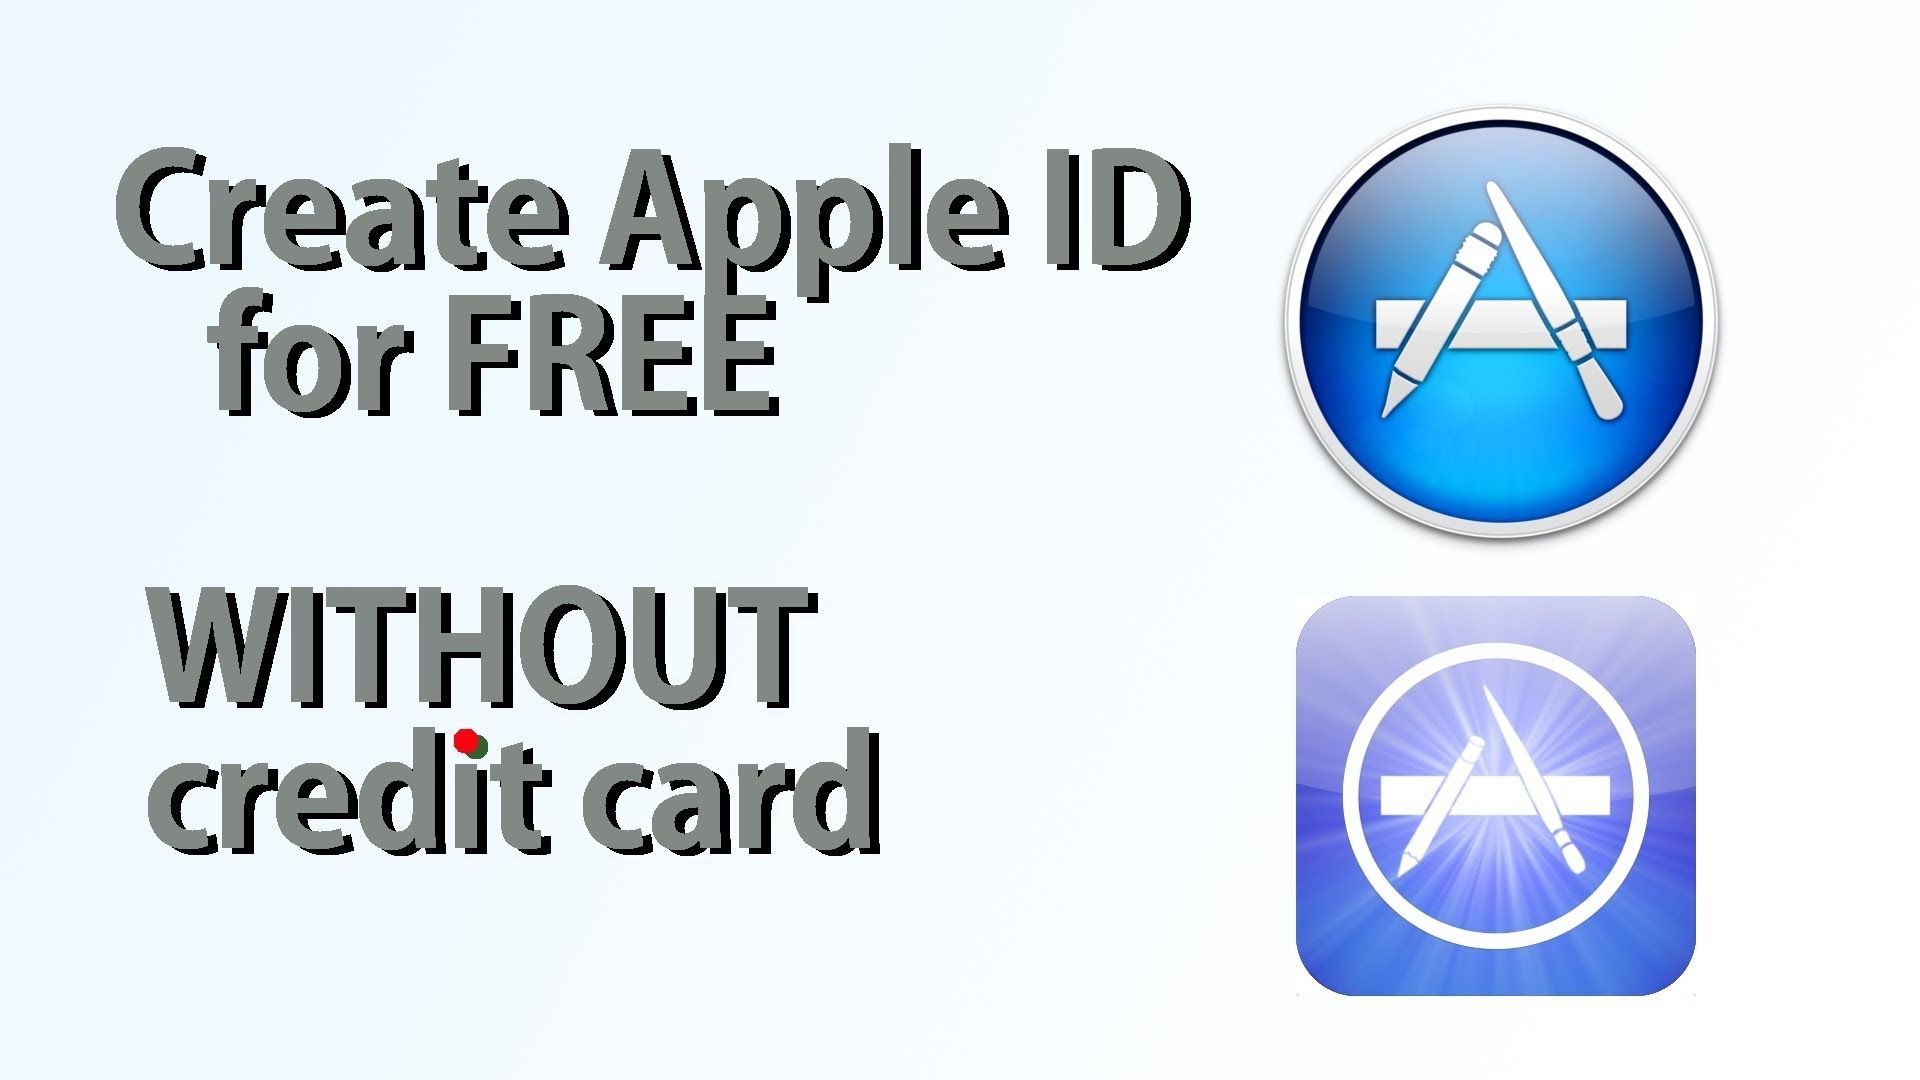 How To Create Free Apple ID on iPhone Without Credit Card